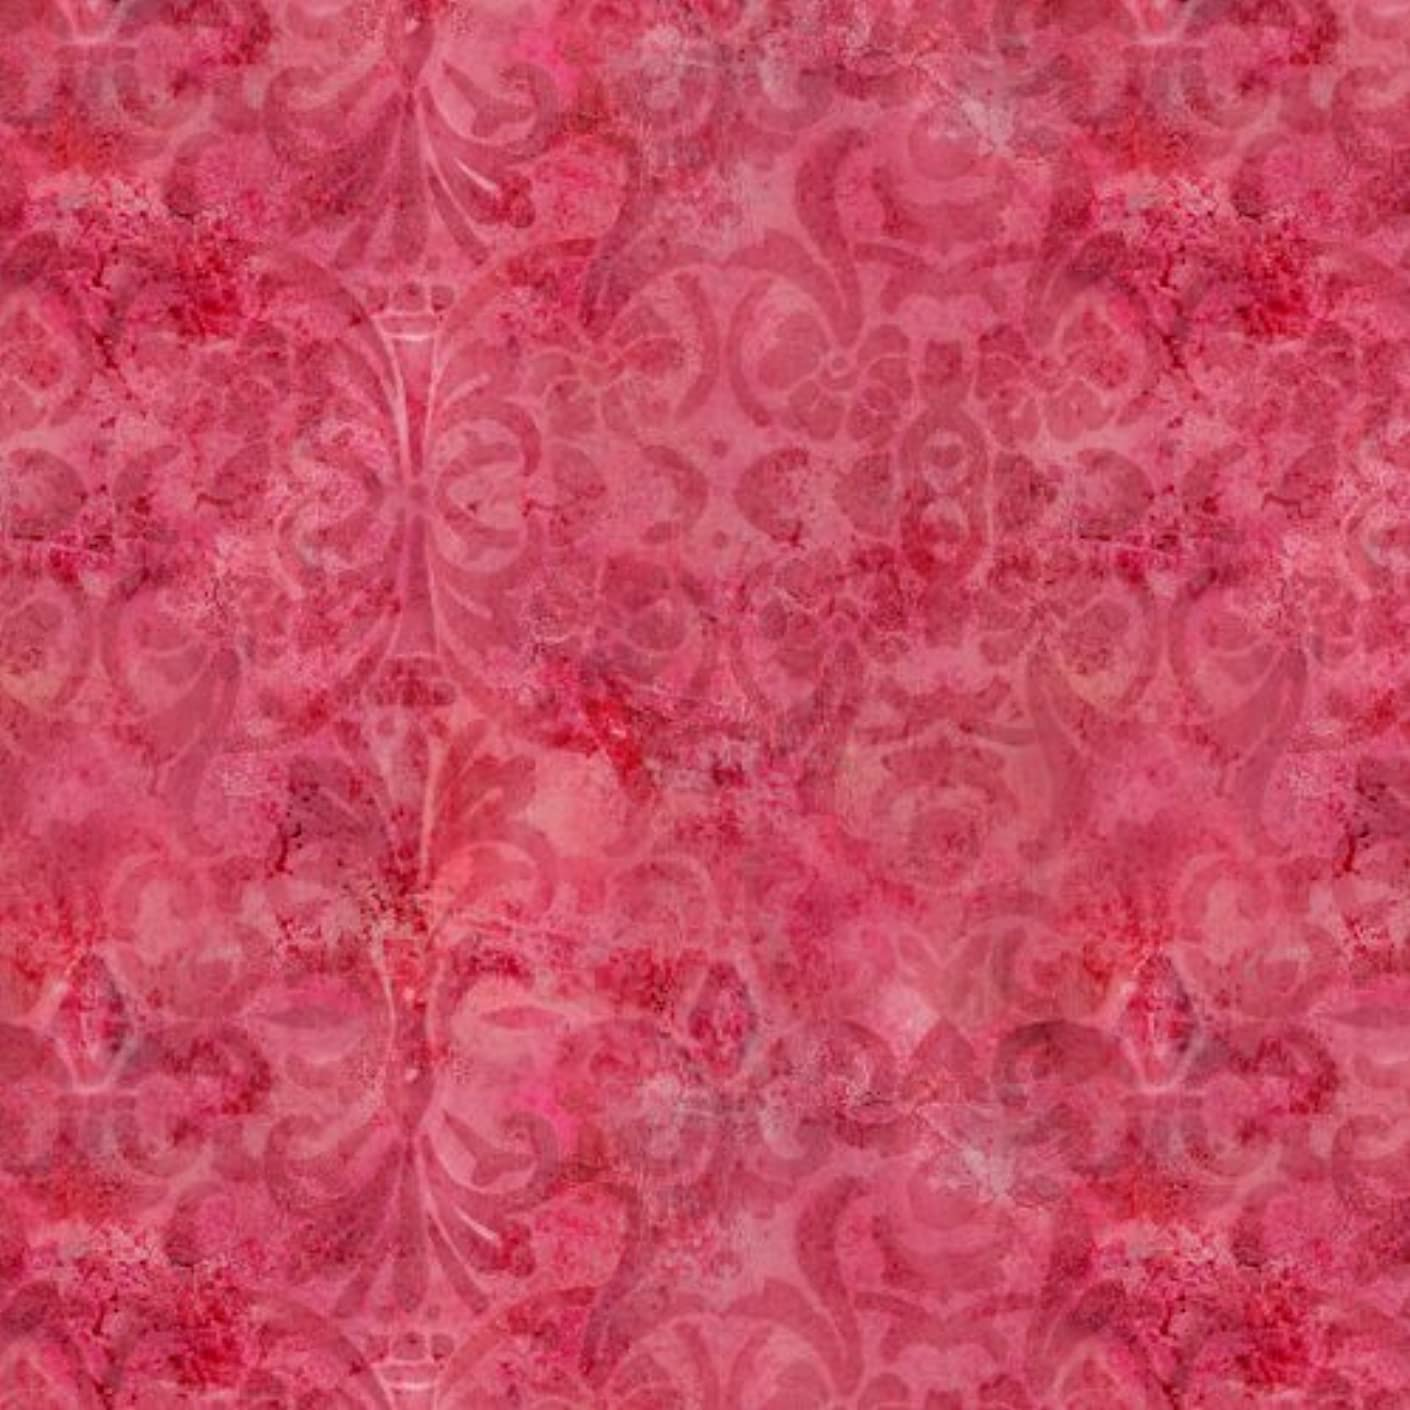 Springs Creative Premium Quilting Sacre Coeur Floral Scroll Fabric, 44 by 45-Inch